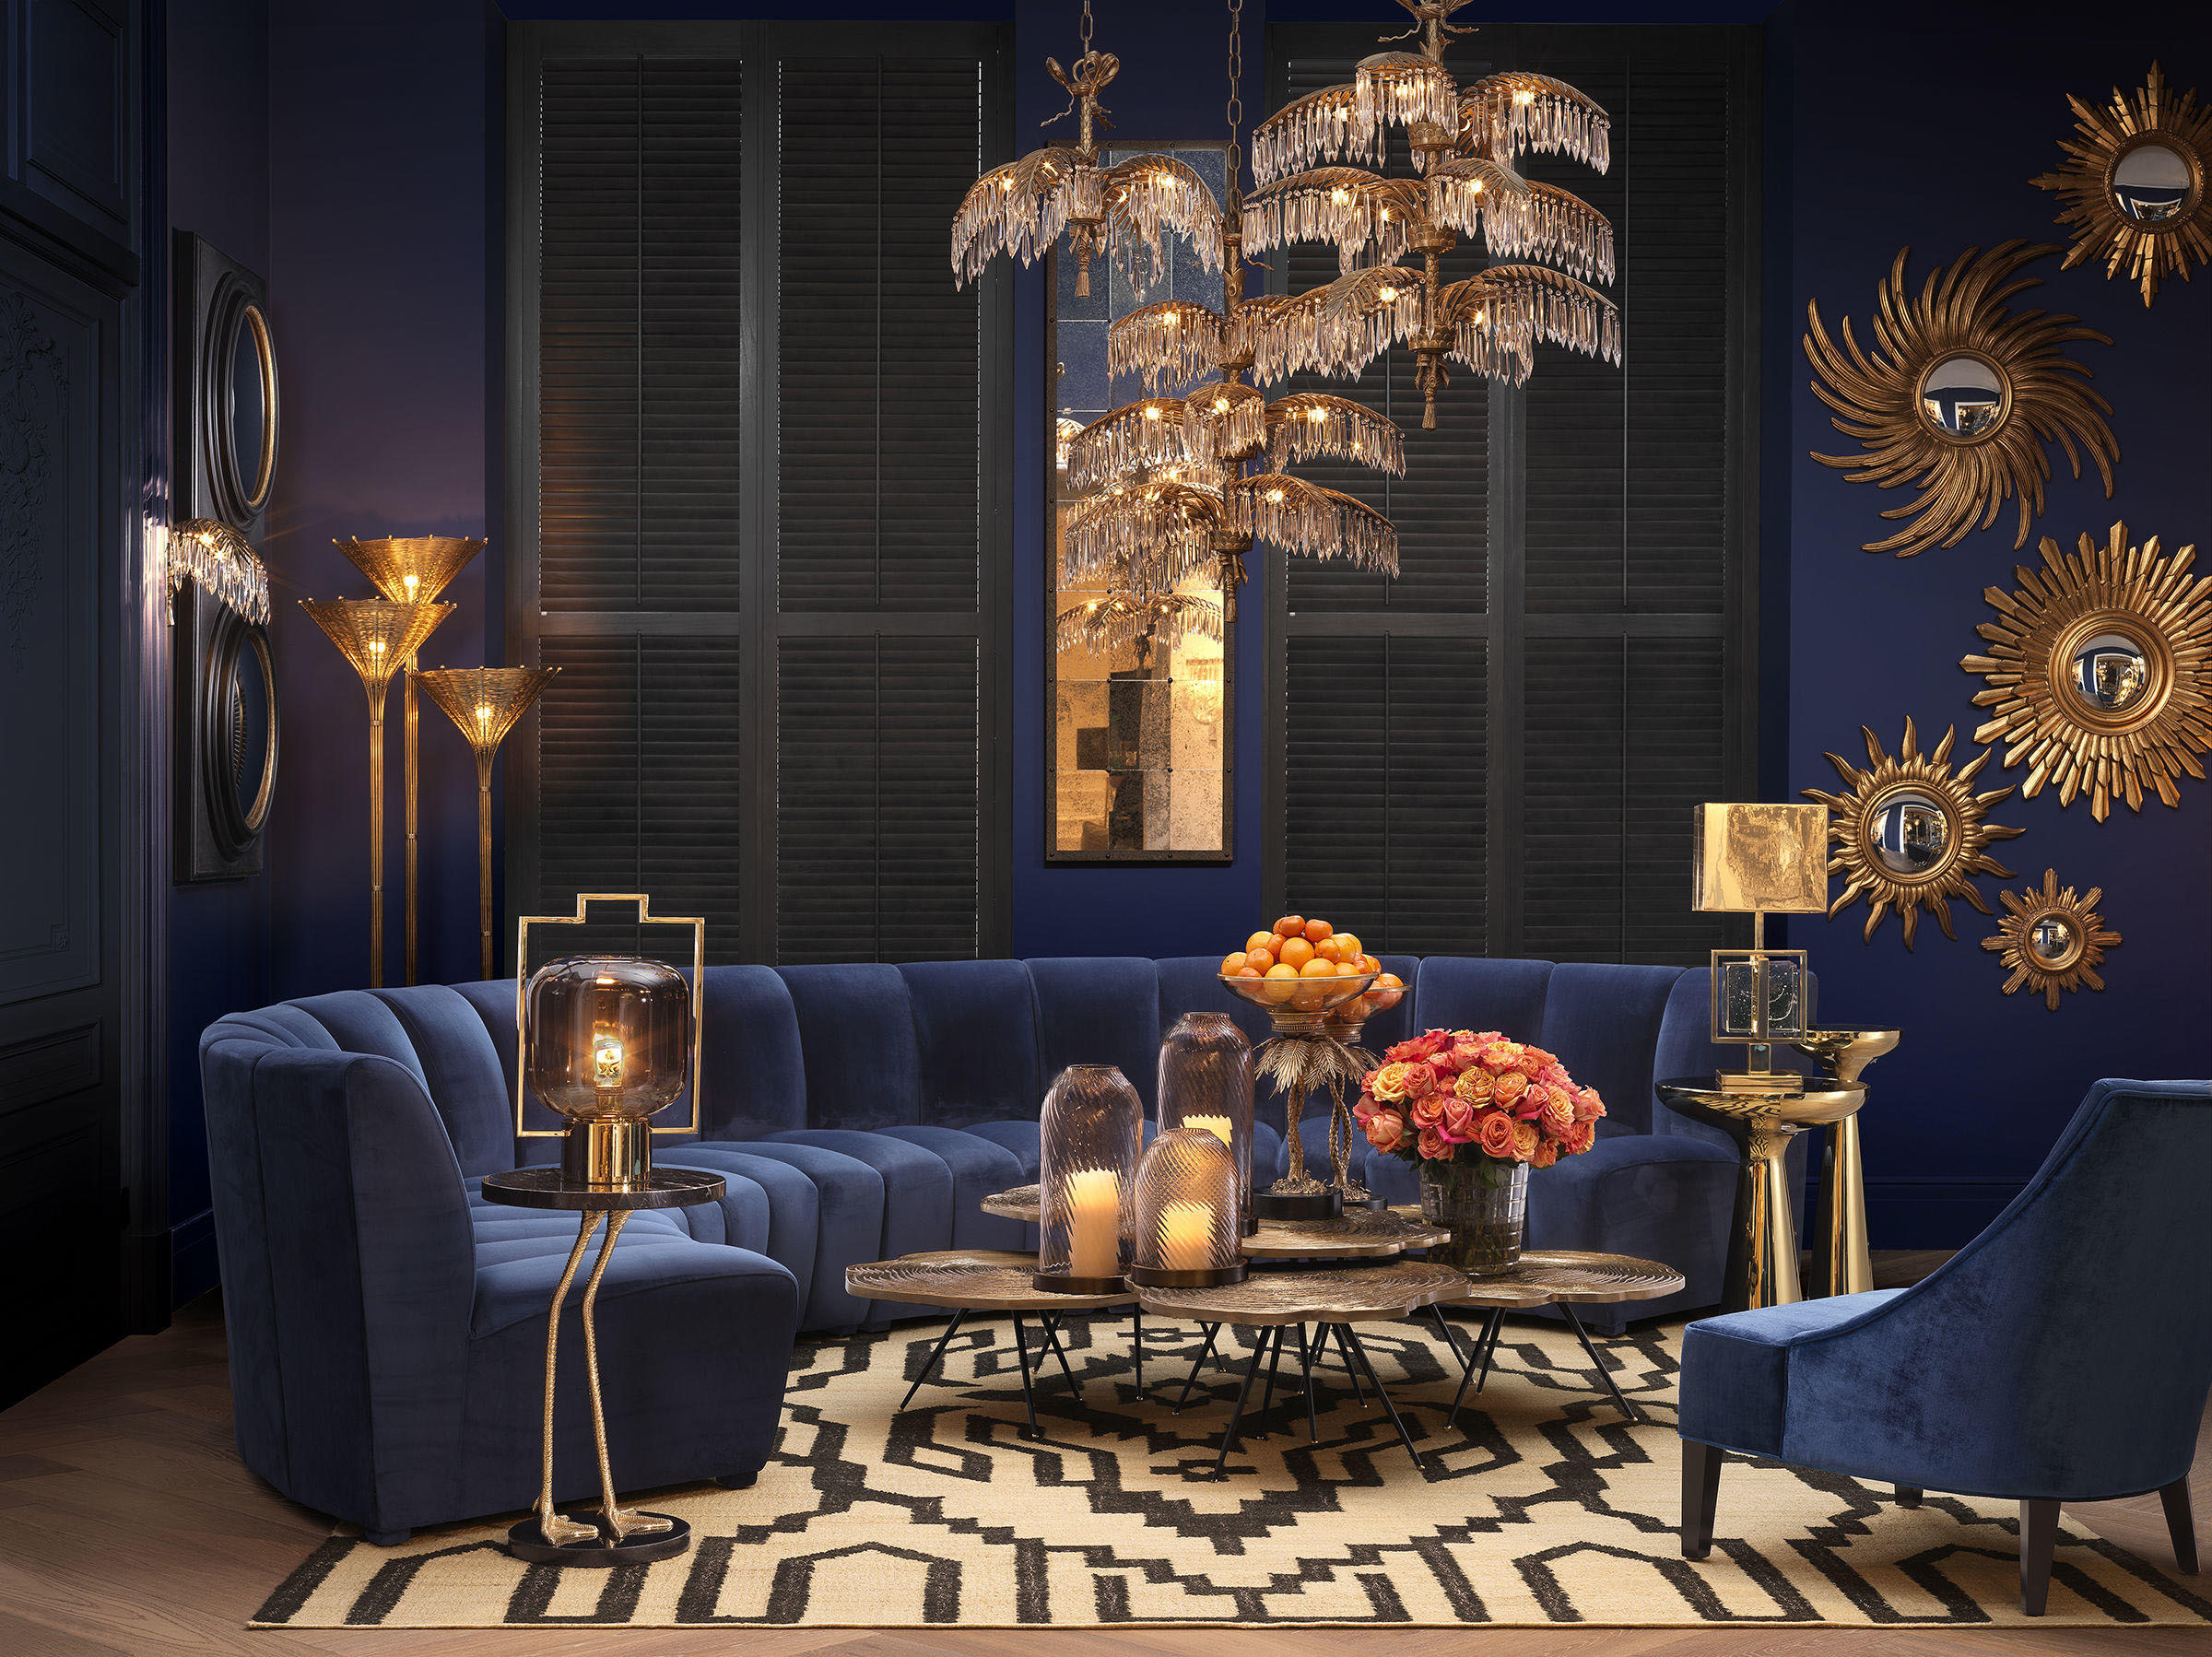 mple velvet sofa circular shape with gold details, modern luxury blue gold living set, sofa with no legs, kanapes mple me xrisa accessories,